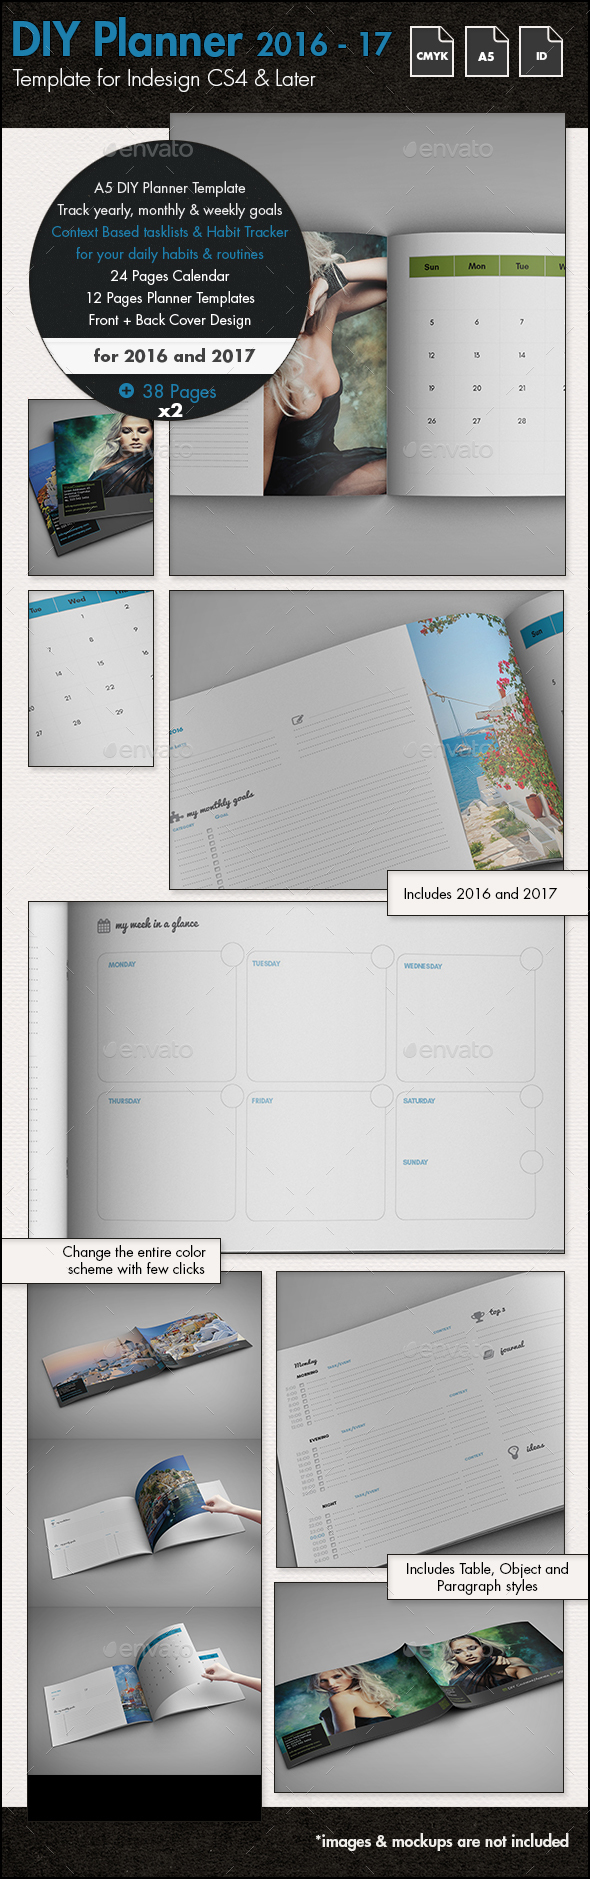 DIY Planner - Calendar for 2016 and 2017 Template - A5 - Calendars Stationery